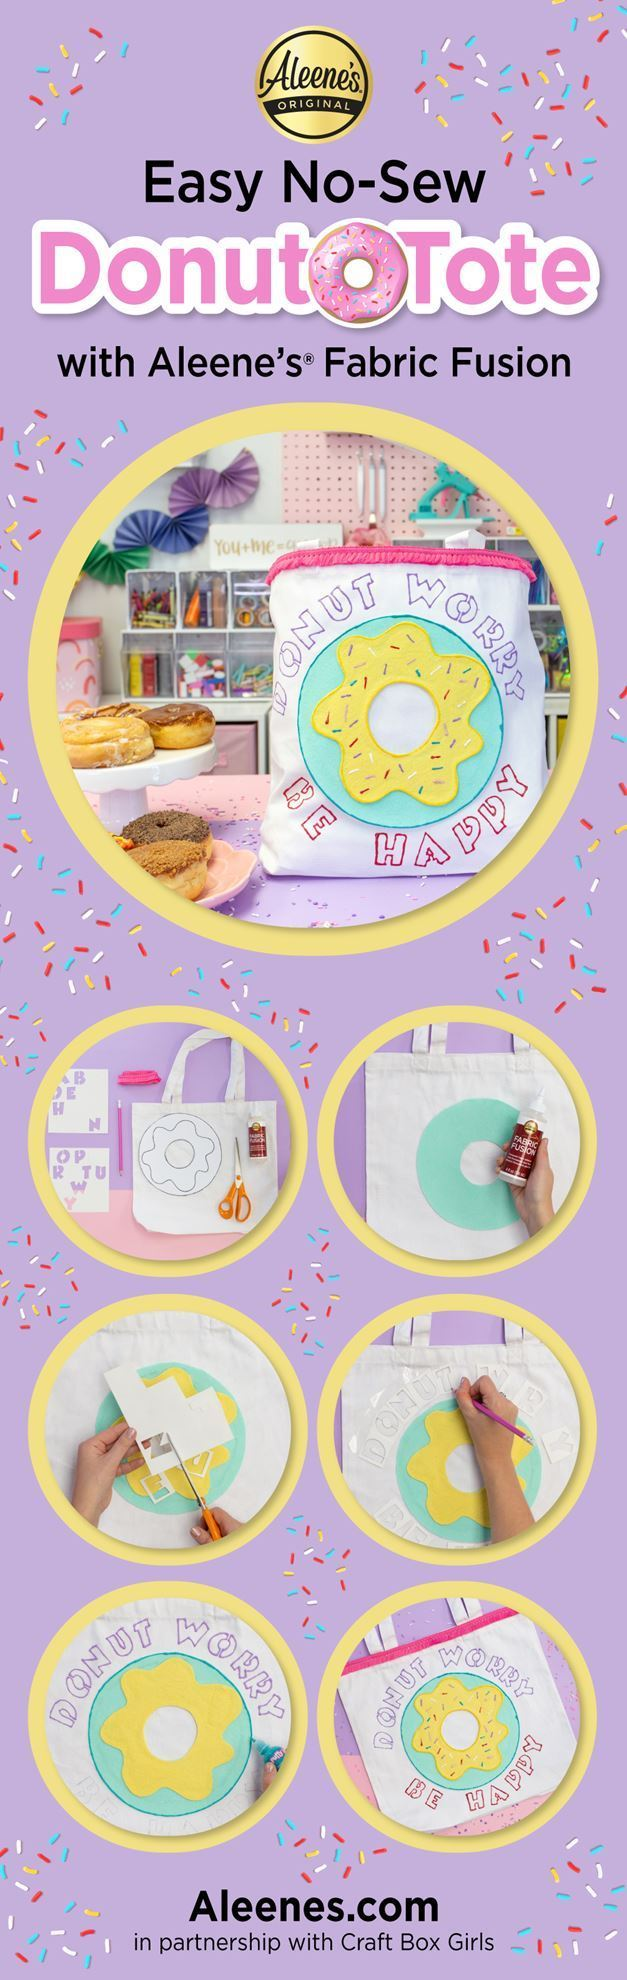 No-Sew Donut Tote with Fabric Glue